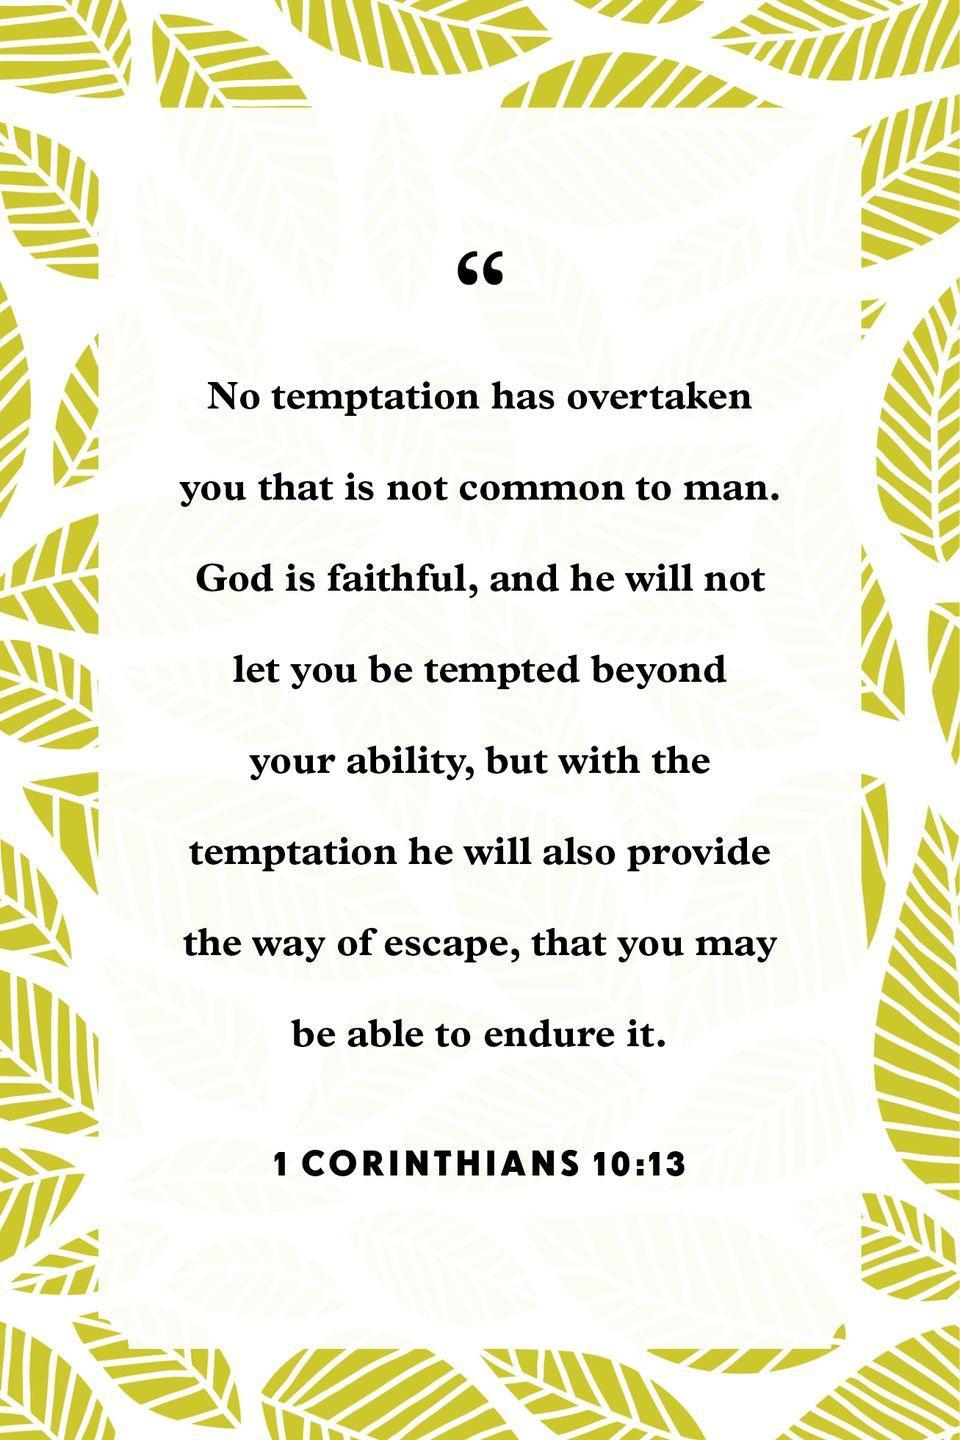 "<p>""No temptation has overtaken you that is not common to man. God is faithful, and he will not let you be tempted beyond your ability, but with the temptation he will also provide the way of escape, that you may be able to endure it.""</p>"